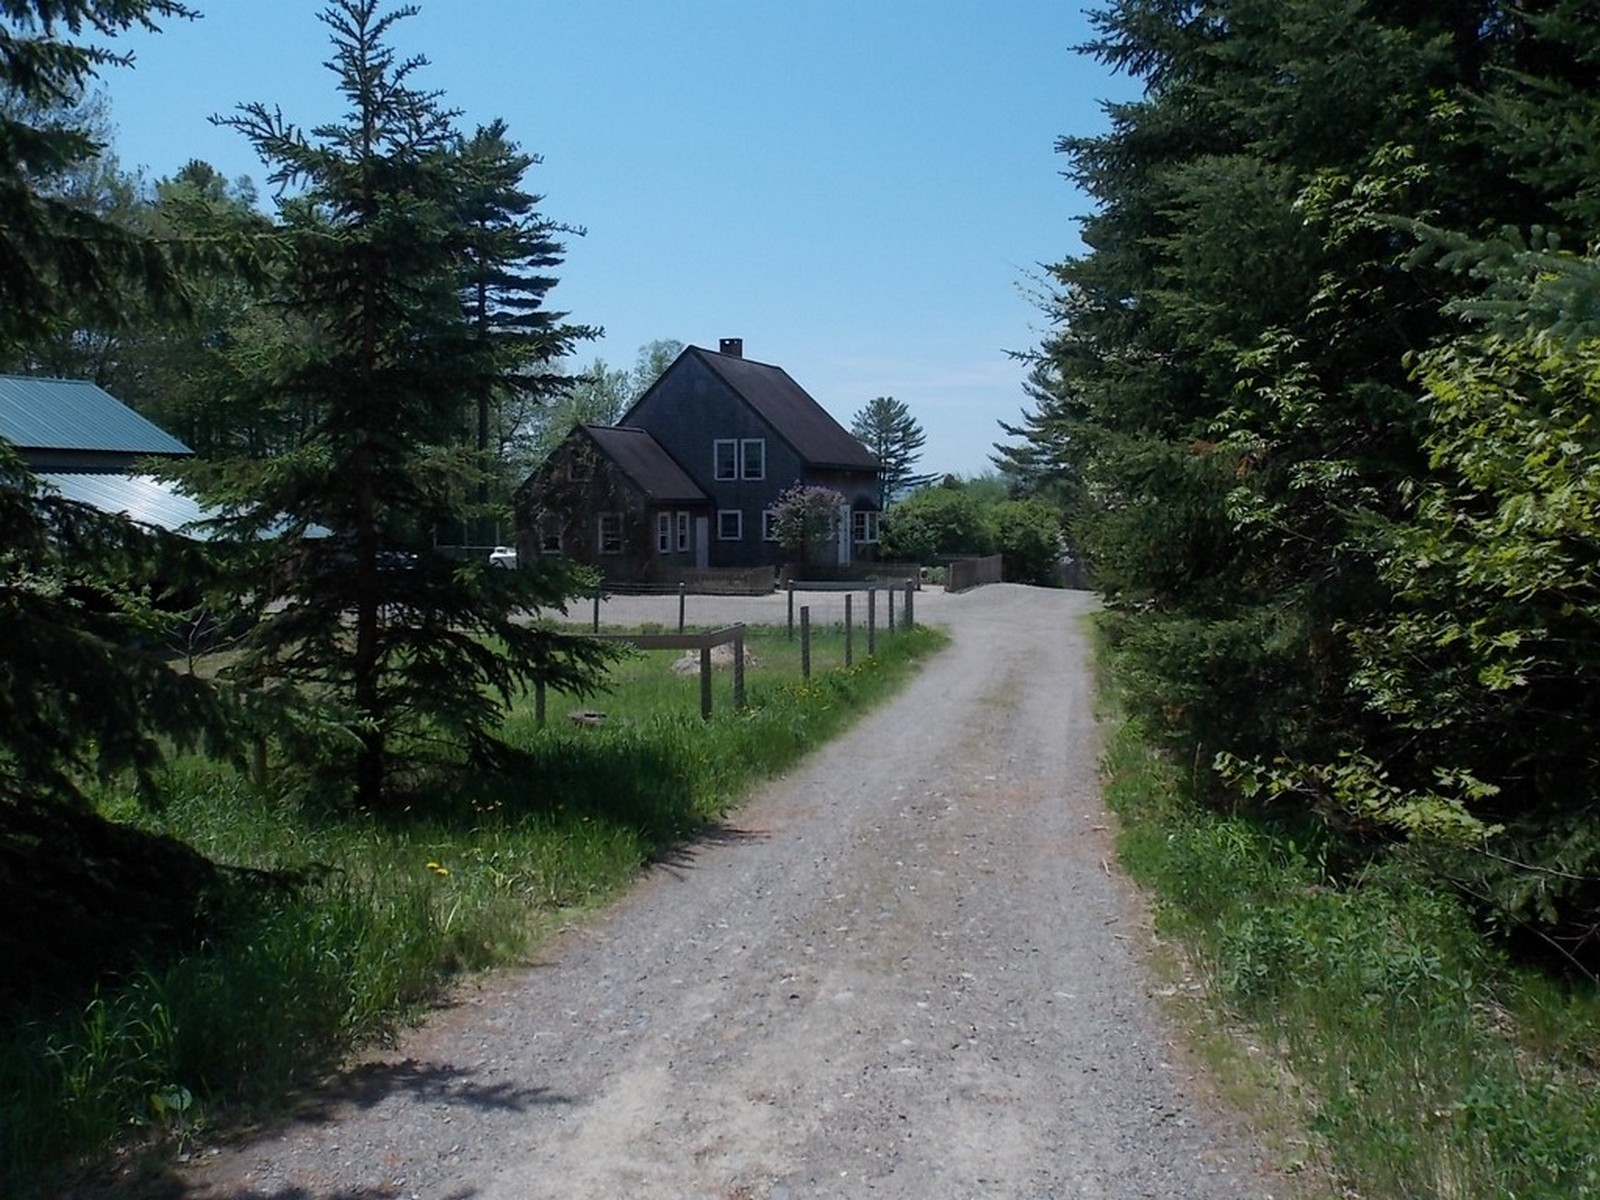 Single Family Home for Sale at North Country Farm 912 Great Pond Rd Great Pond, Maine 04408 United States